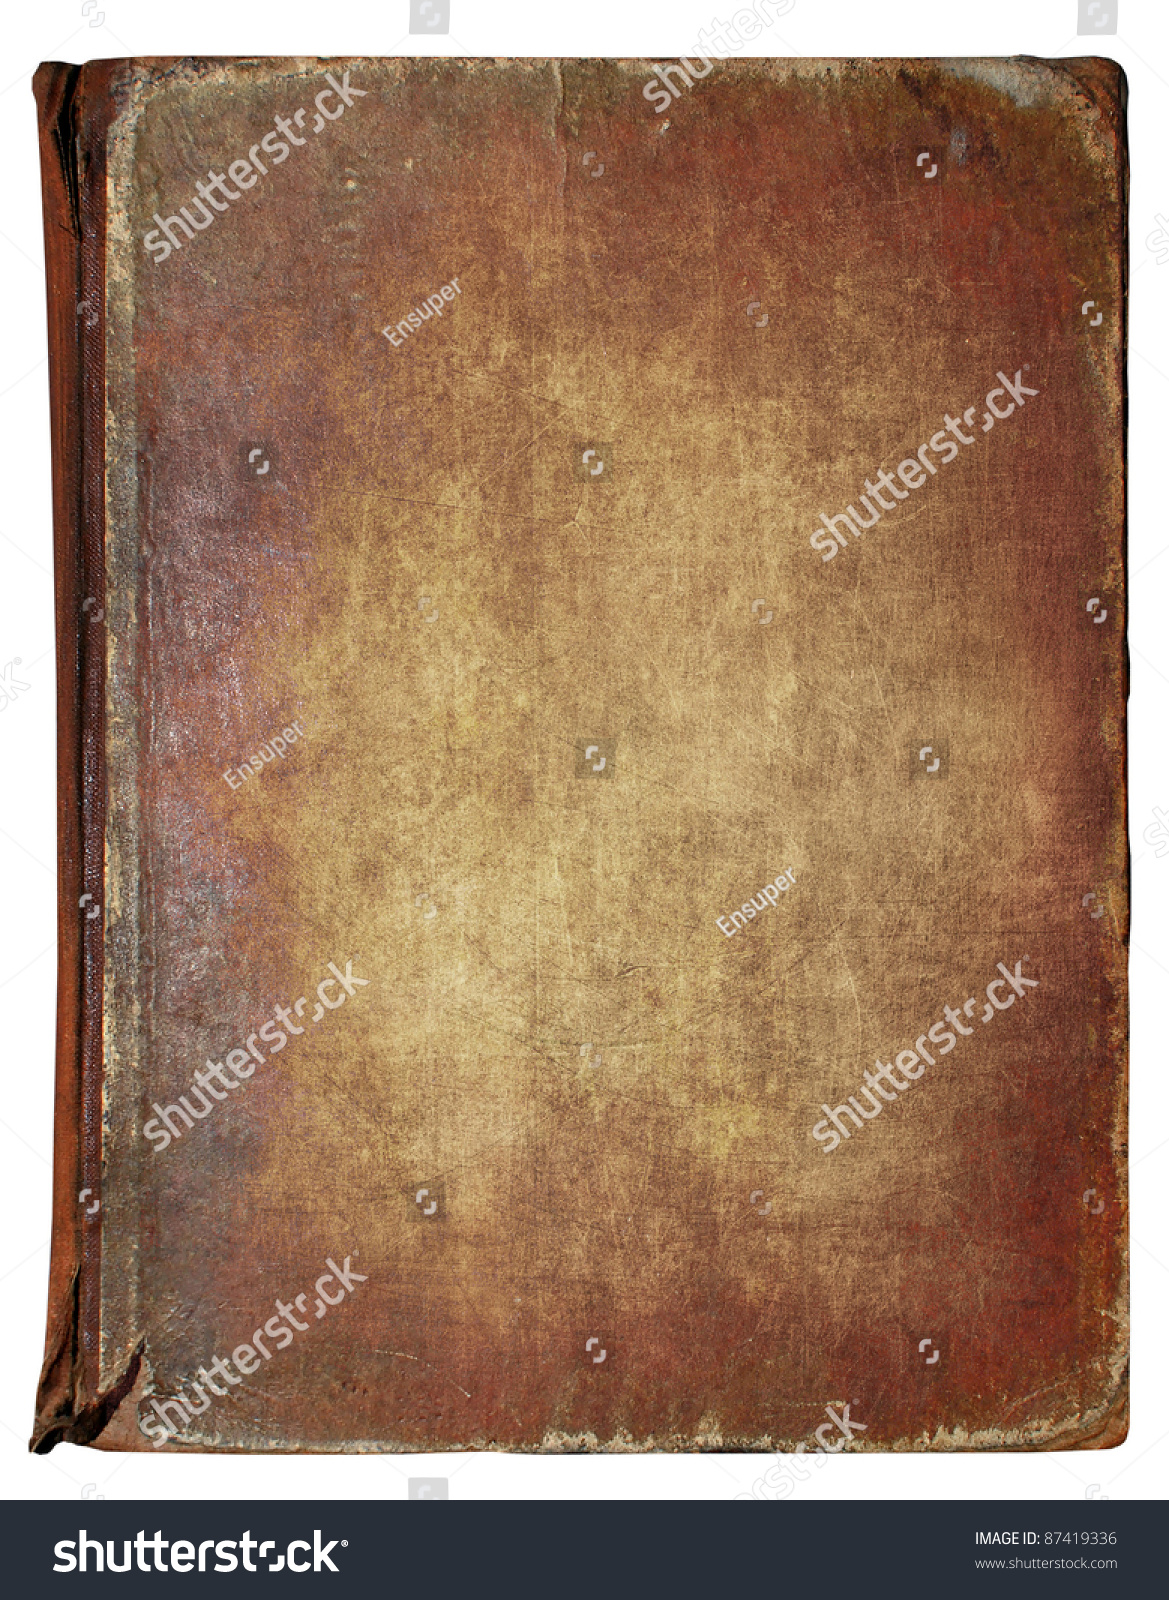 Vintage Book Cover Background : Old book cover vintage texture isolated stock photo